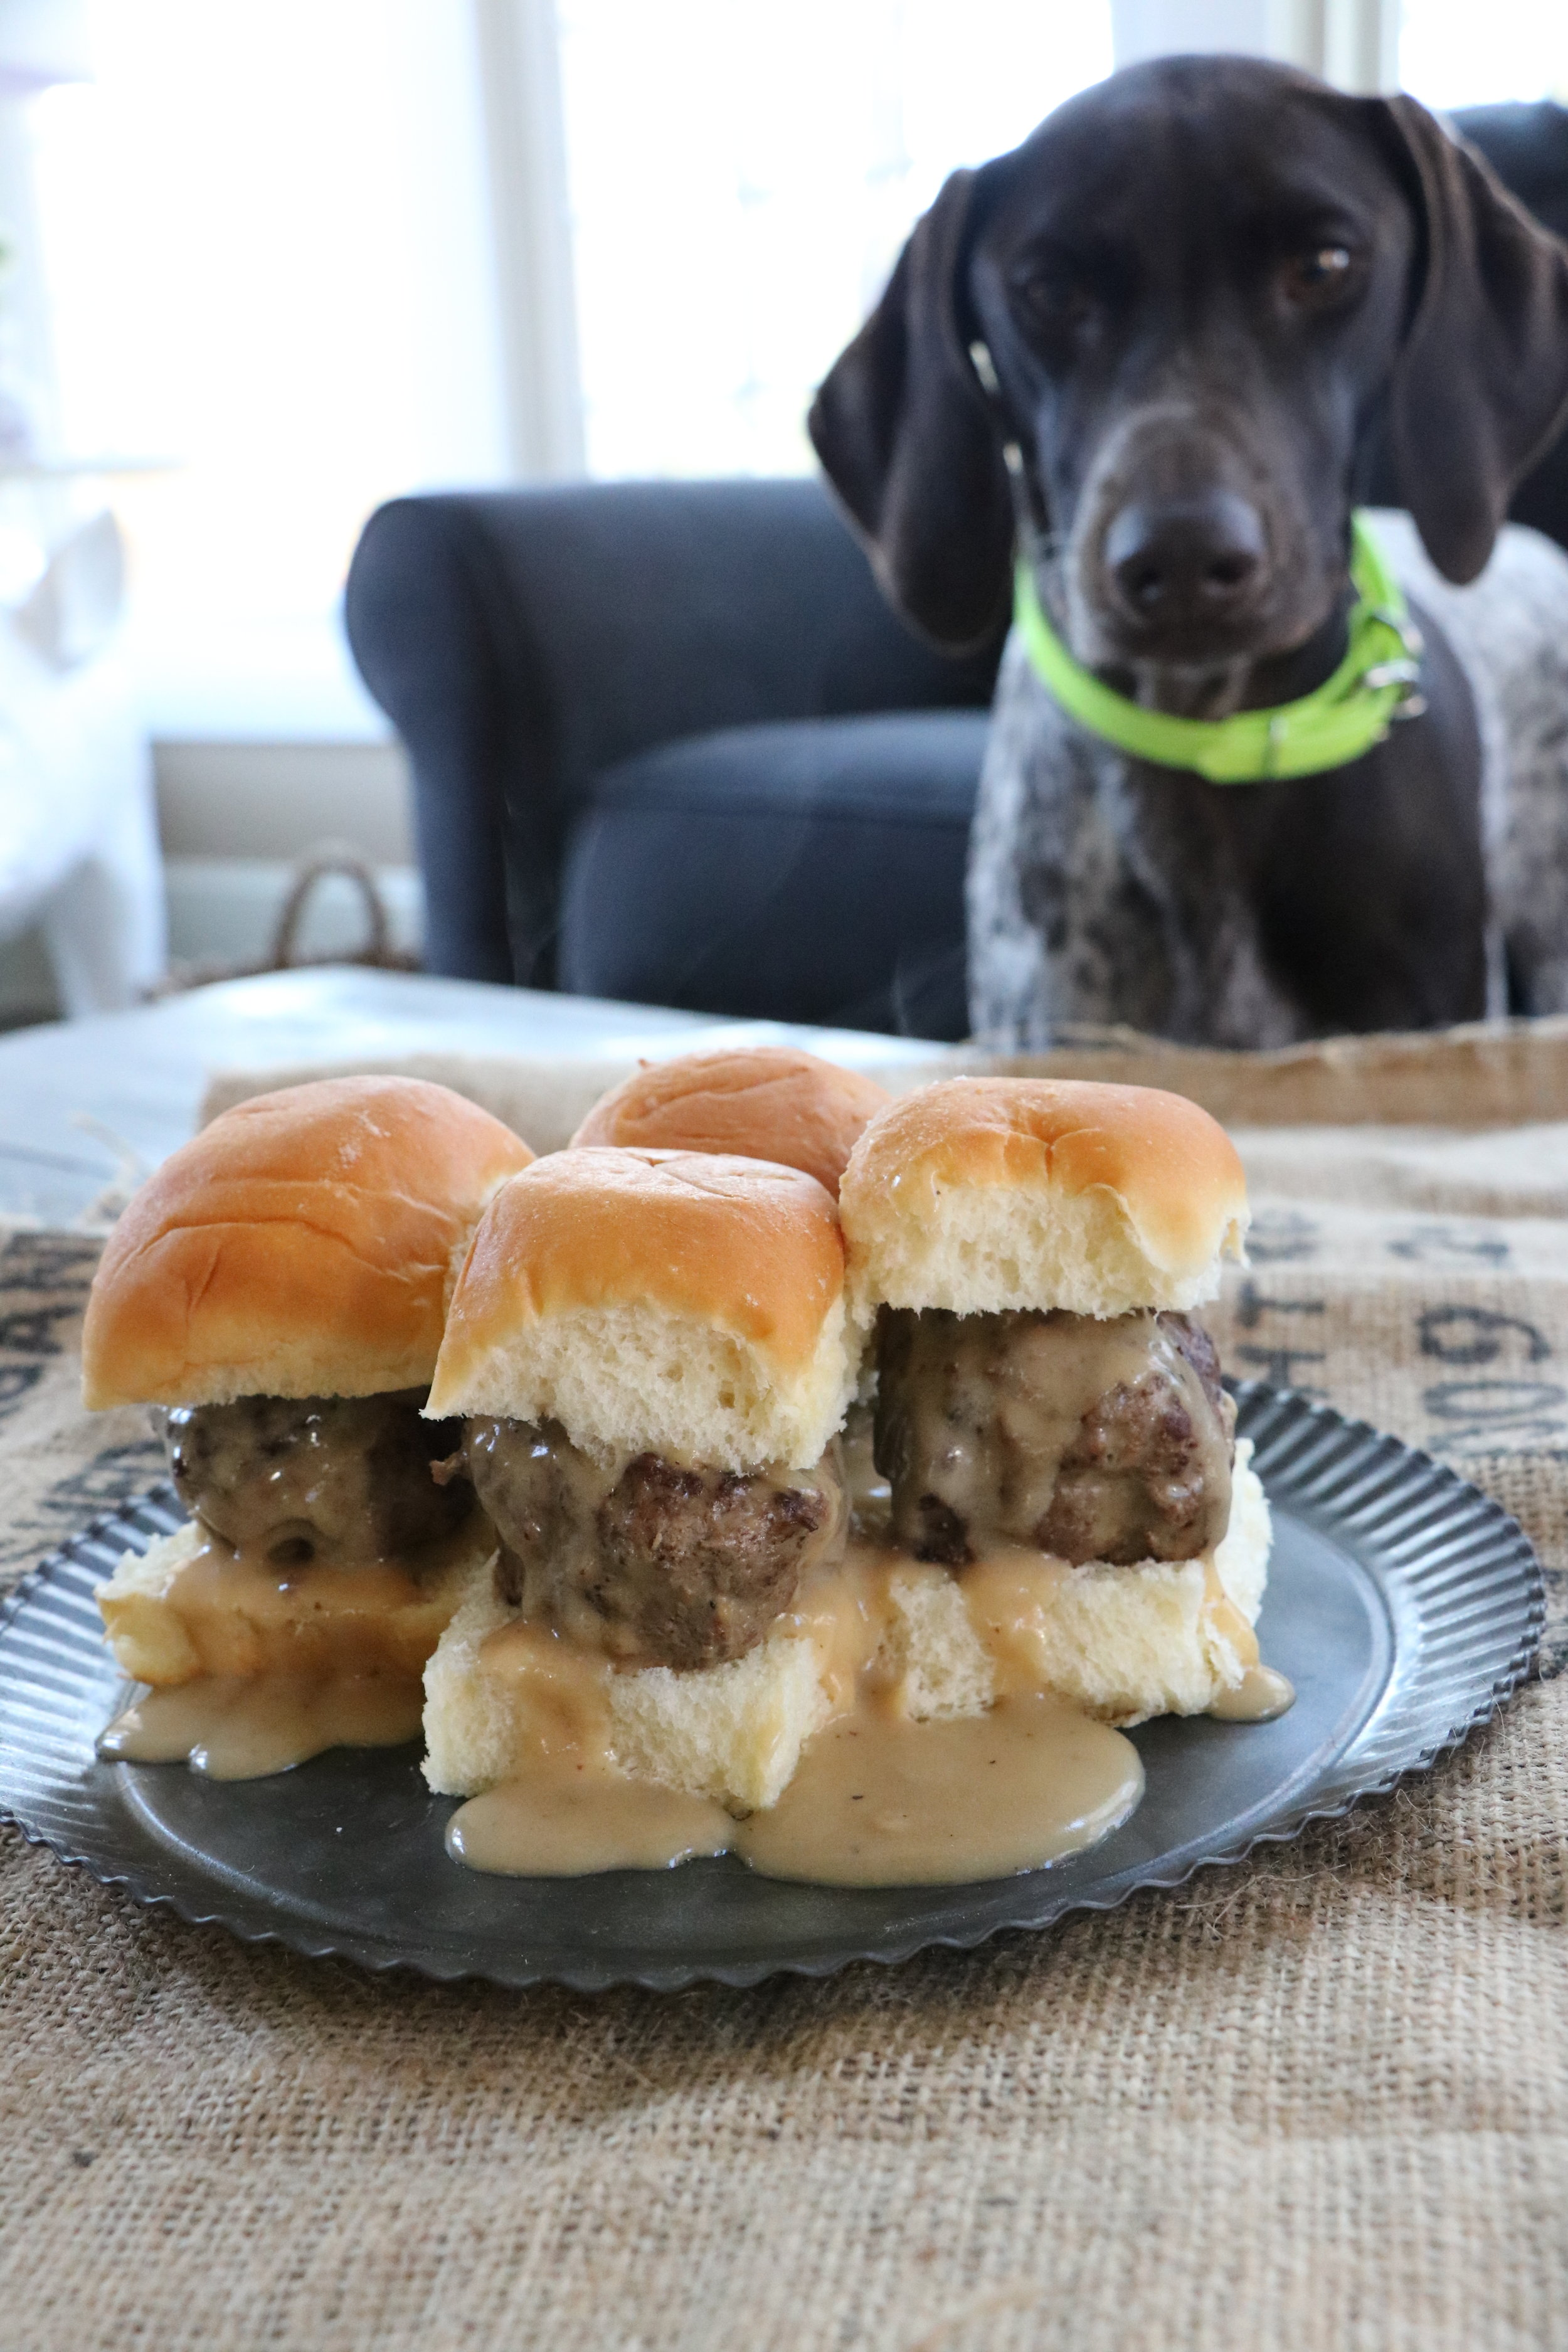 So Yummy.... - Even my sidekick Remi wanted in on the Swiss Elk Slider action!